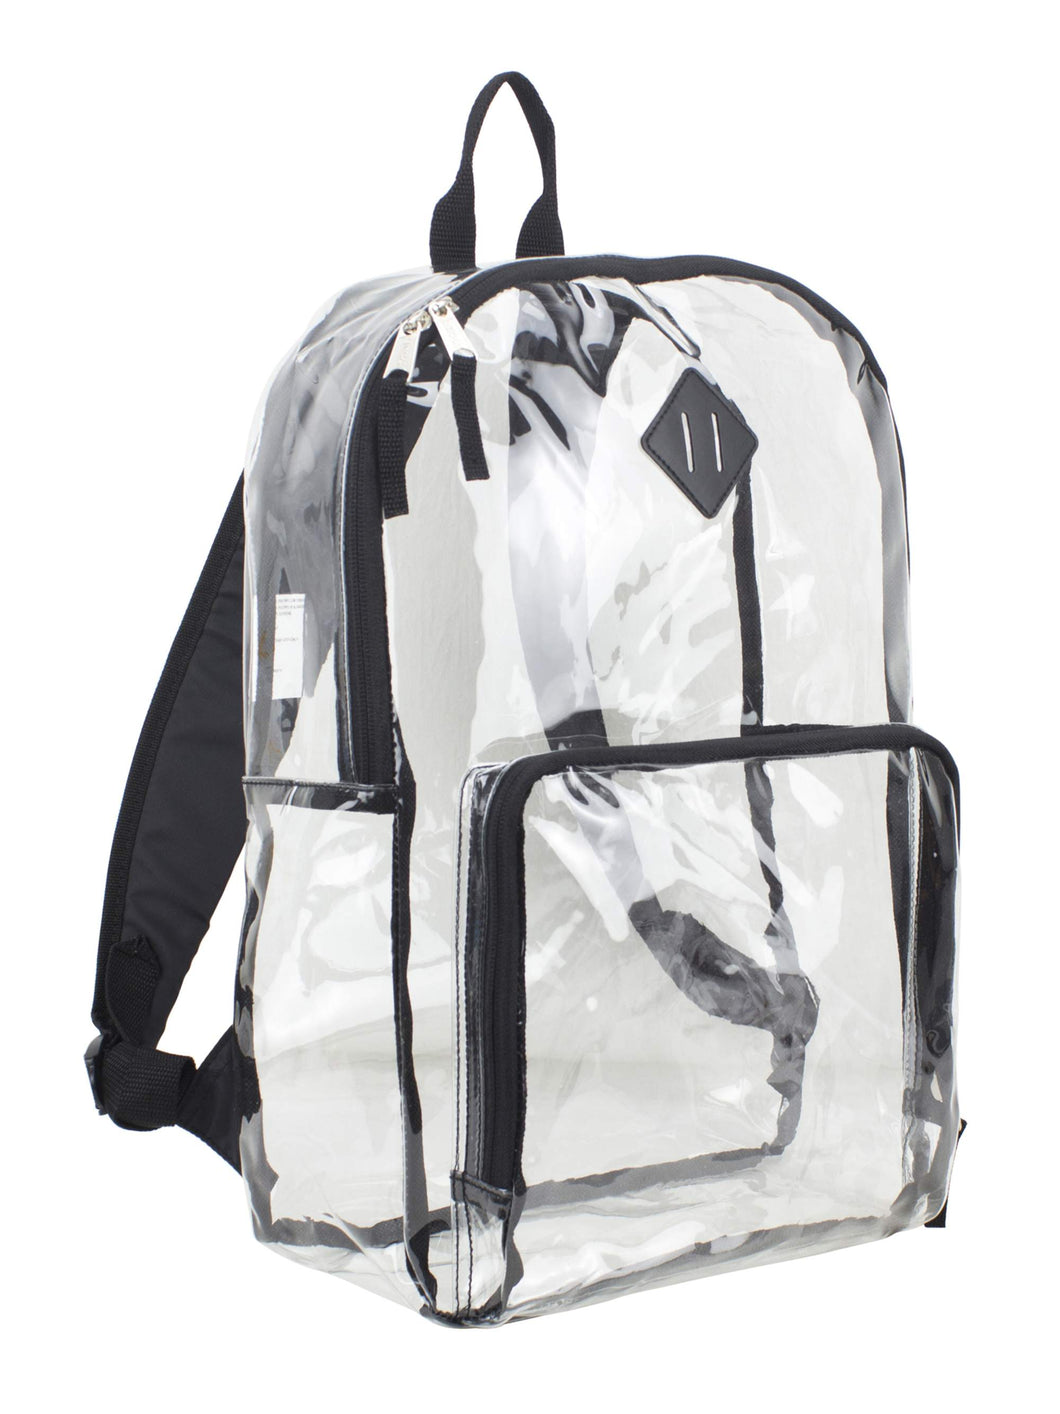 Eastsport Multi-Purpose Clear Backpack